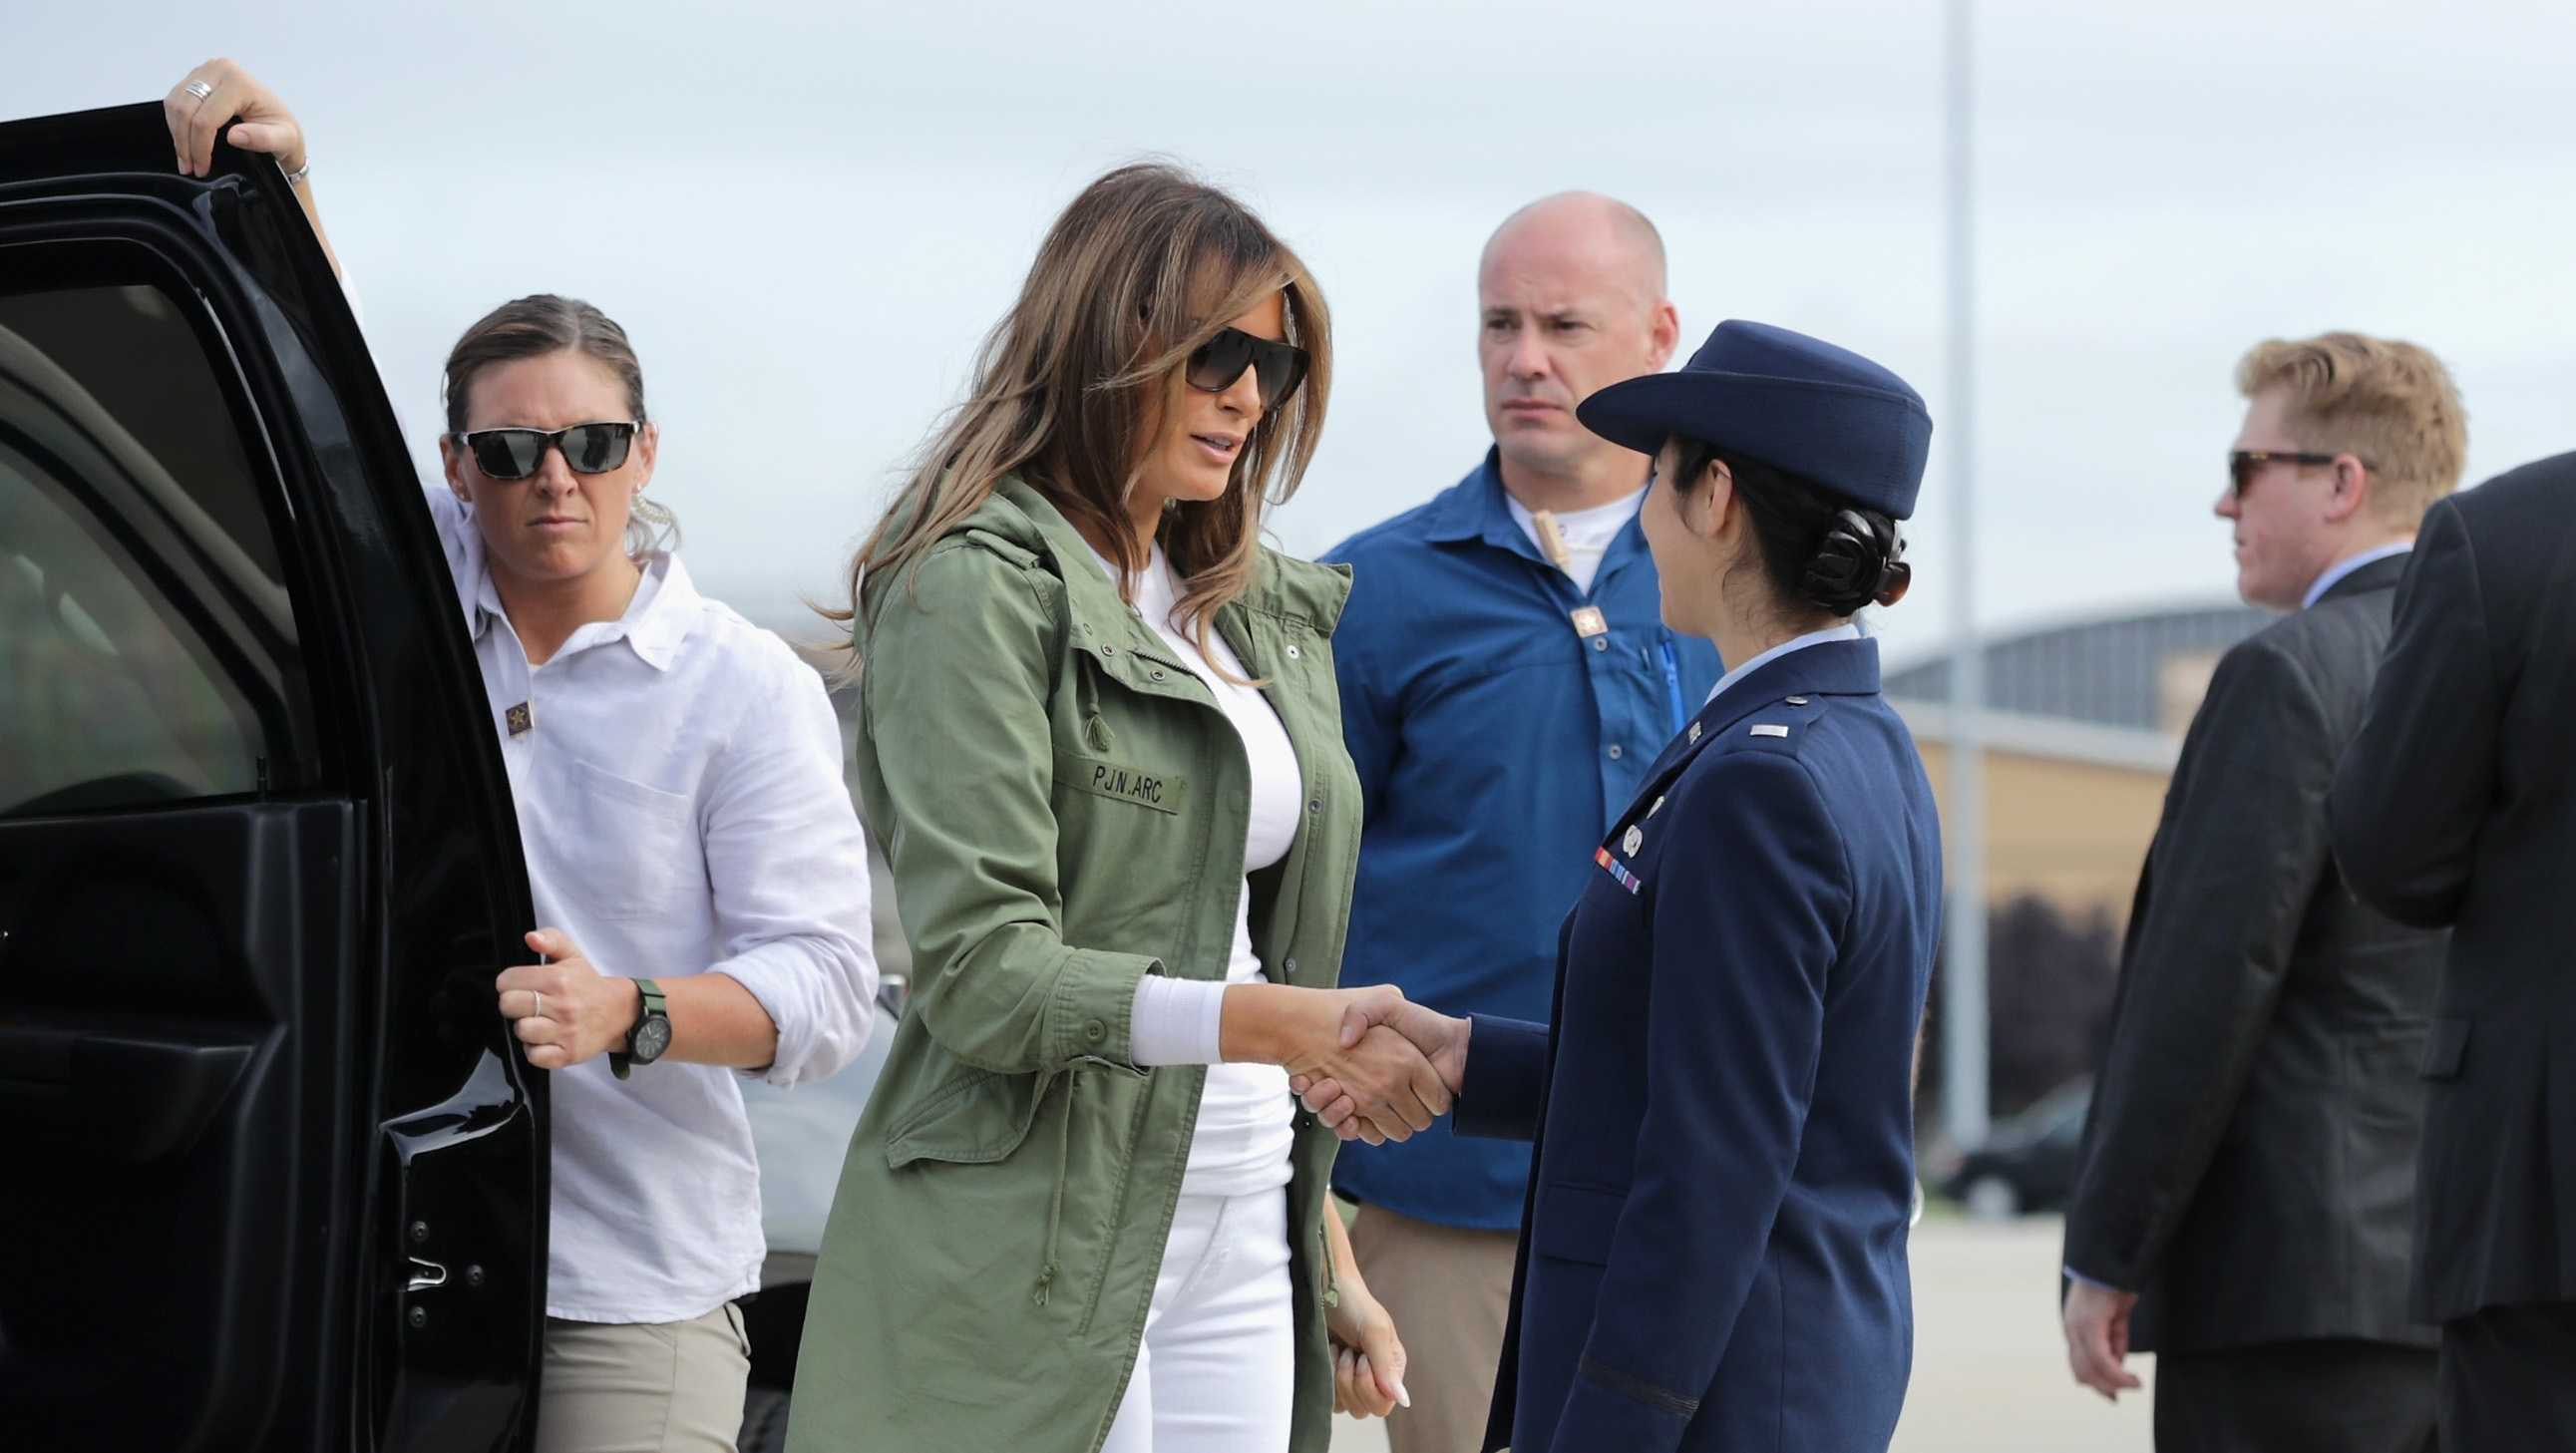 First Lady Melania Trump steps out of her motorcade before boarding an Air Force plane and traveling to Texas to visit facilities that house and care for children taken from their parents at the U.S.-Mexico border June 21, 2018 at Joint Base Andrews, Maryland.​